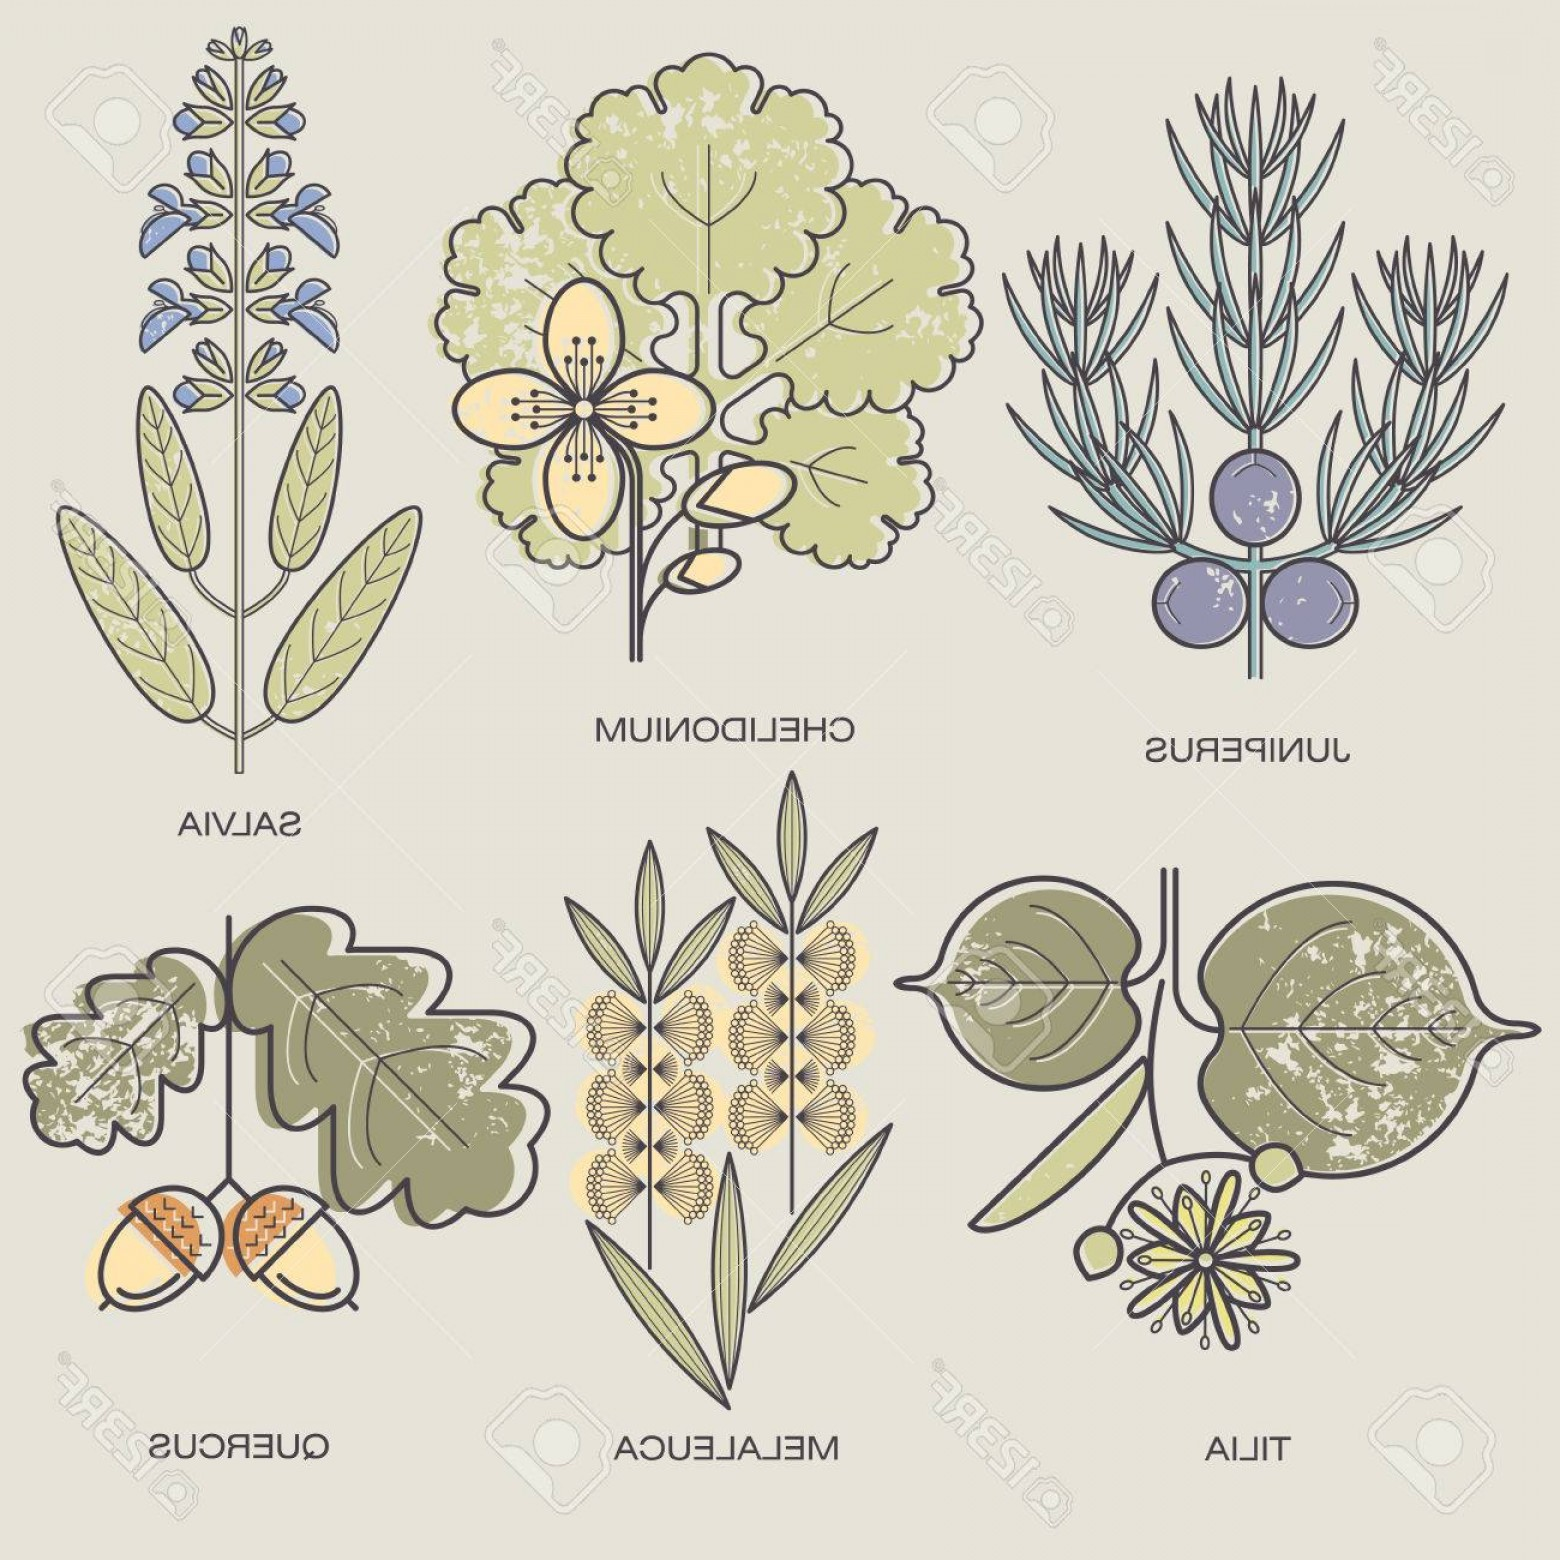 Sage Plant Vector: Photostock Vector Medicinal Herbs Juniper Branch Celandine Sage Linden Flower Tea Tree Oak Fruit Vector Illustration S